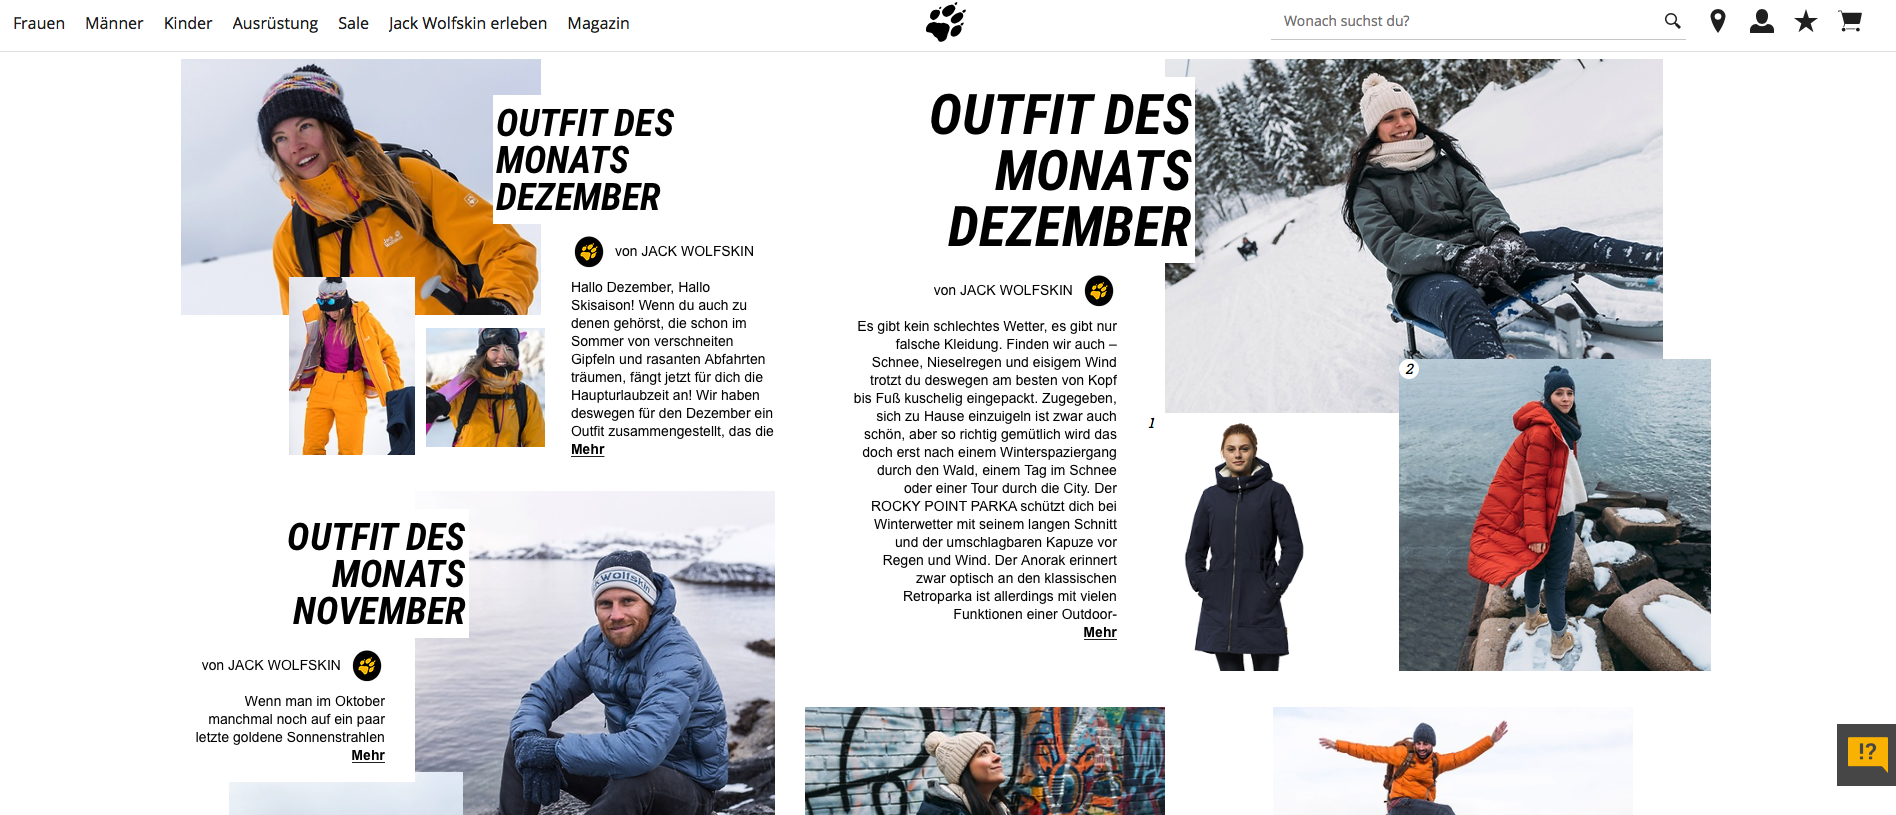 jack-wolfskin-outfit-des-monats-shoppable-content-marketing